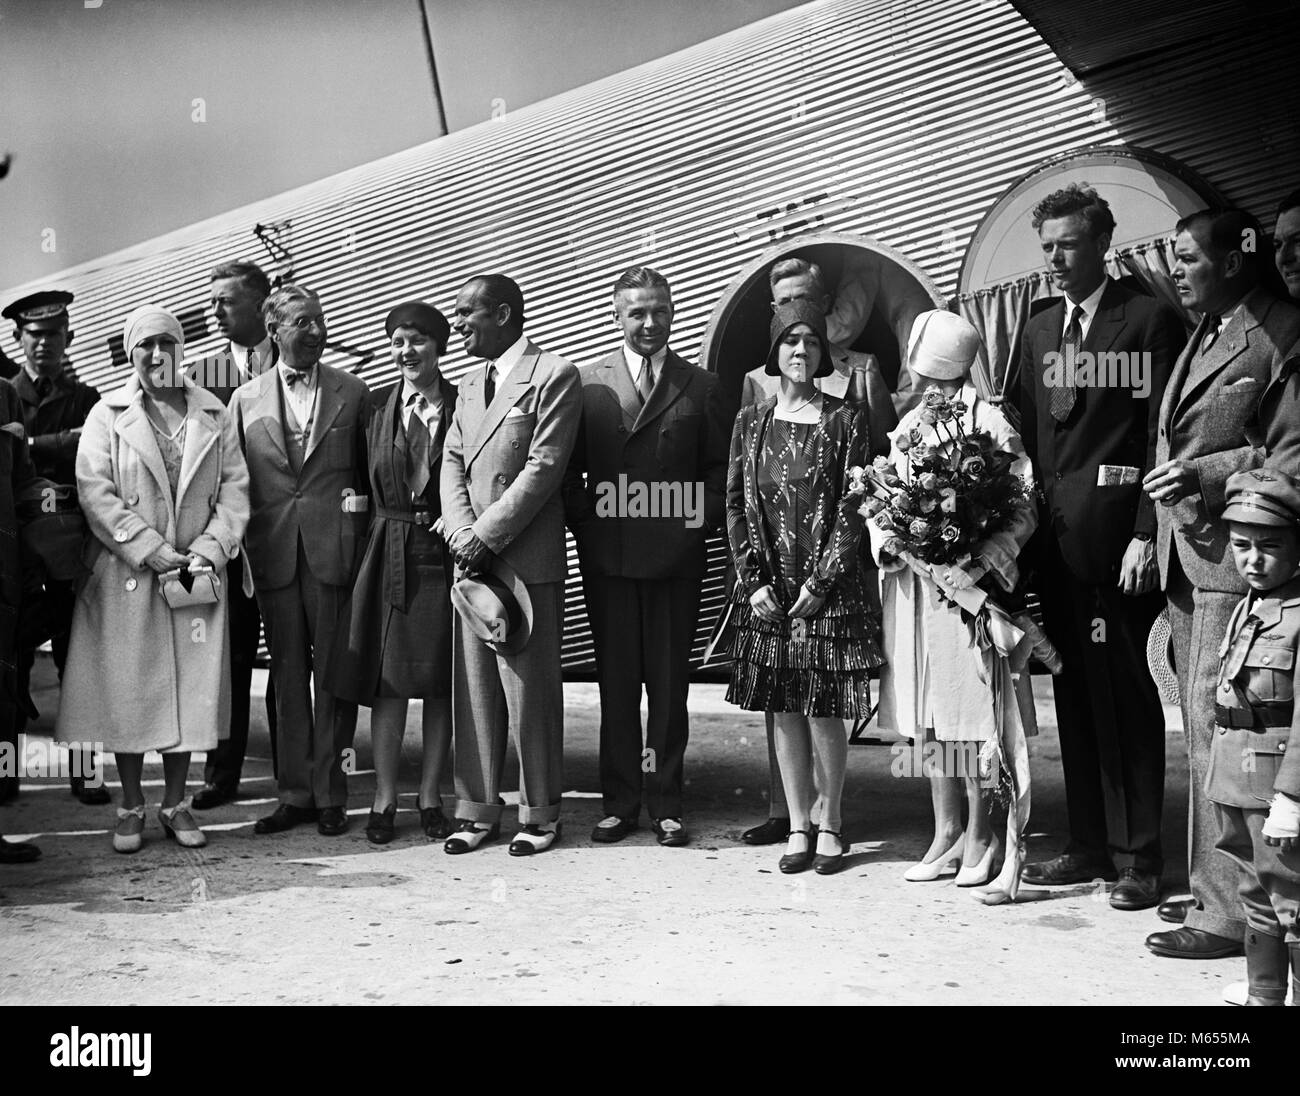 JULY 7 1929 AVIATOR CHARLES LINDBERGH AND WIFE ANNE STANDING BY AIRPLANE WITH GROUP OF PEOPLE - asp_gp90 ASP001 - Stock Image